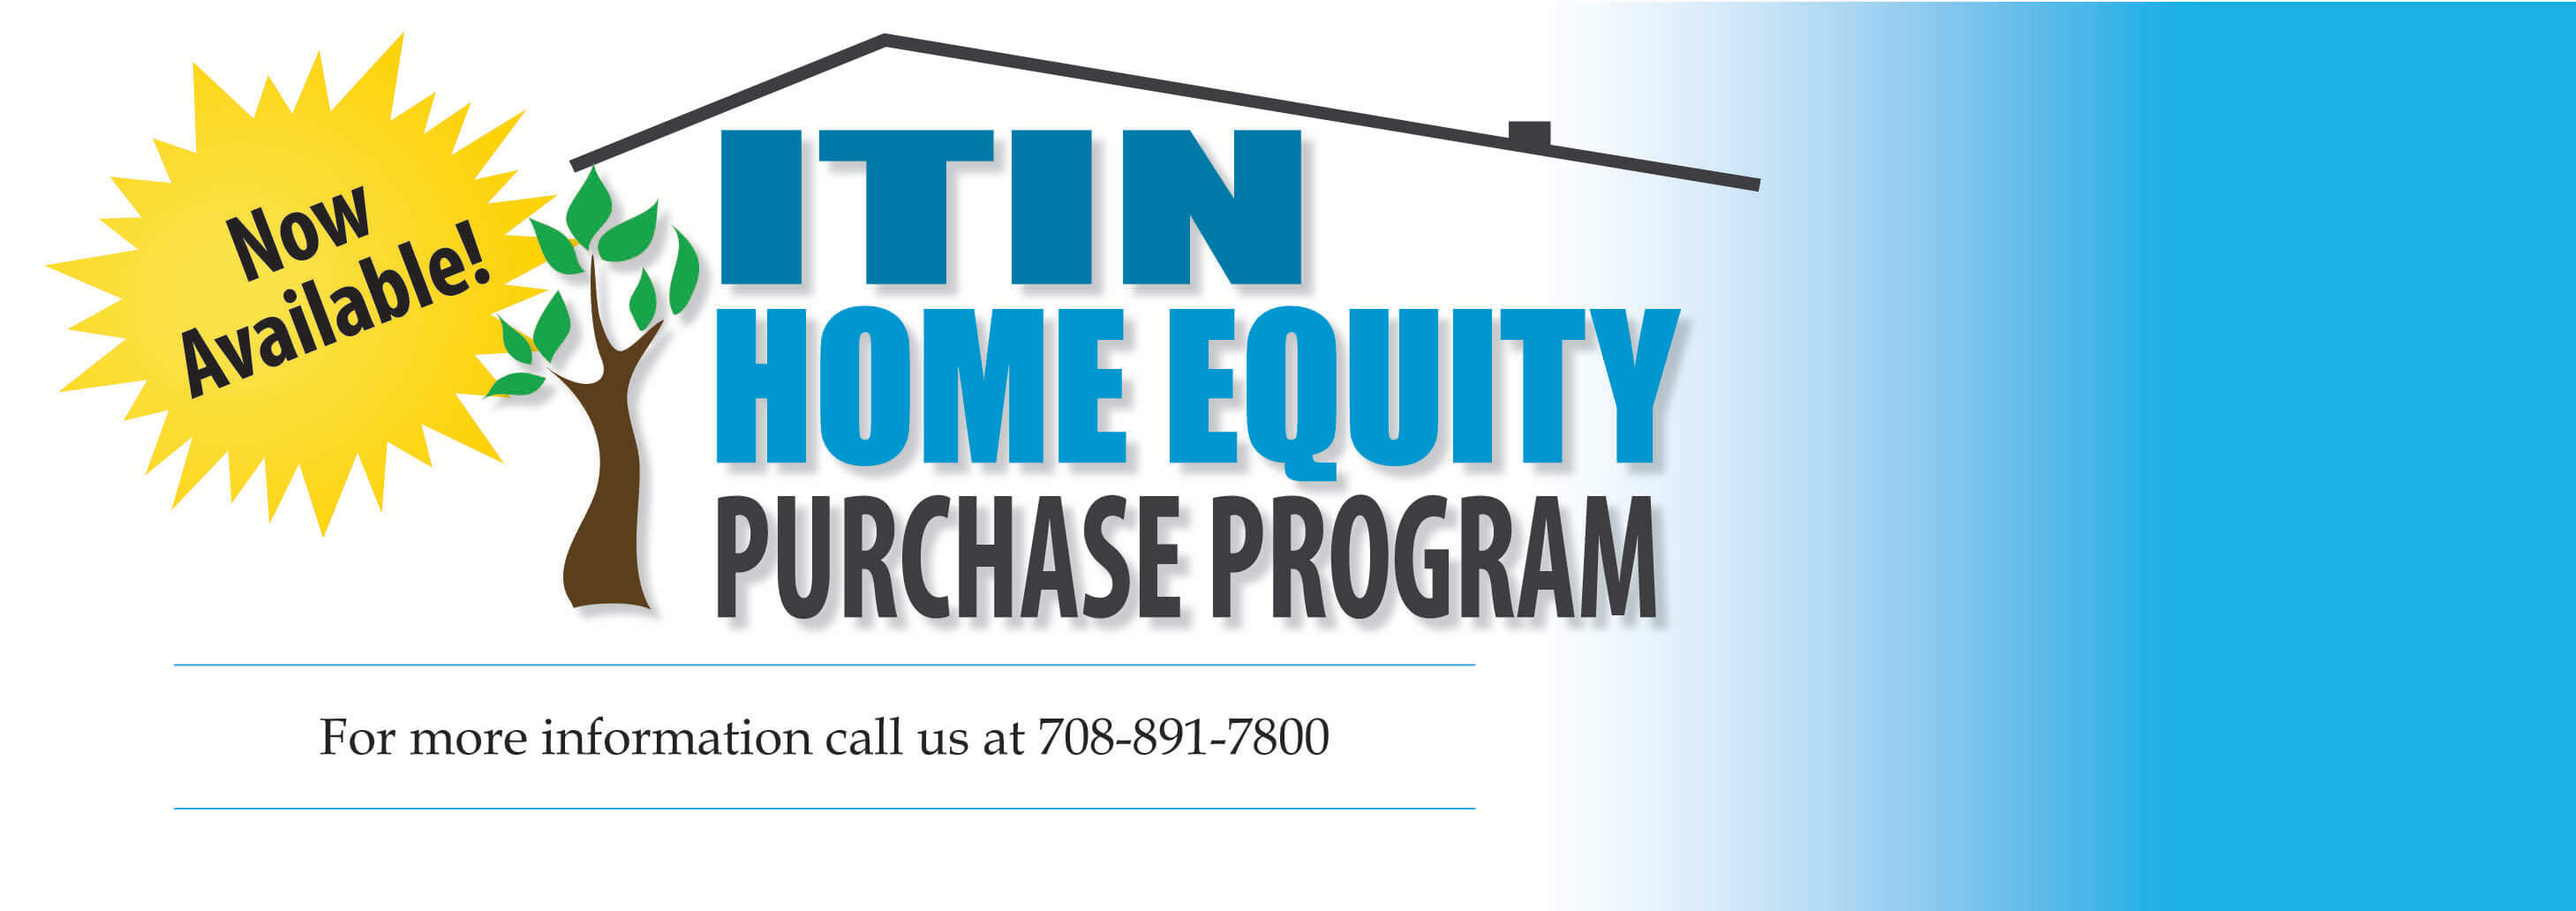 For information on ITIN mortgage call 708-891-7800